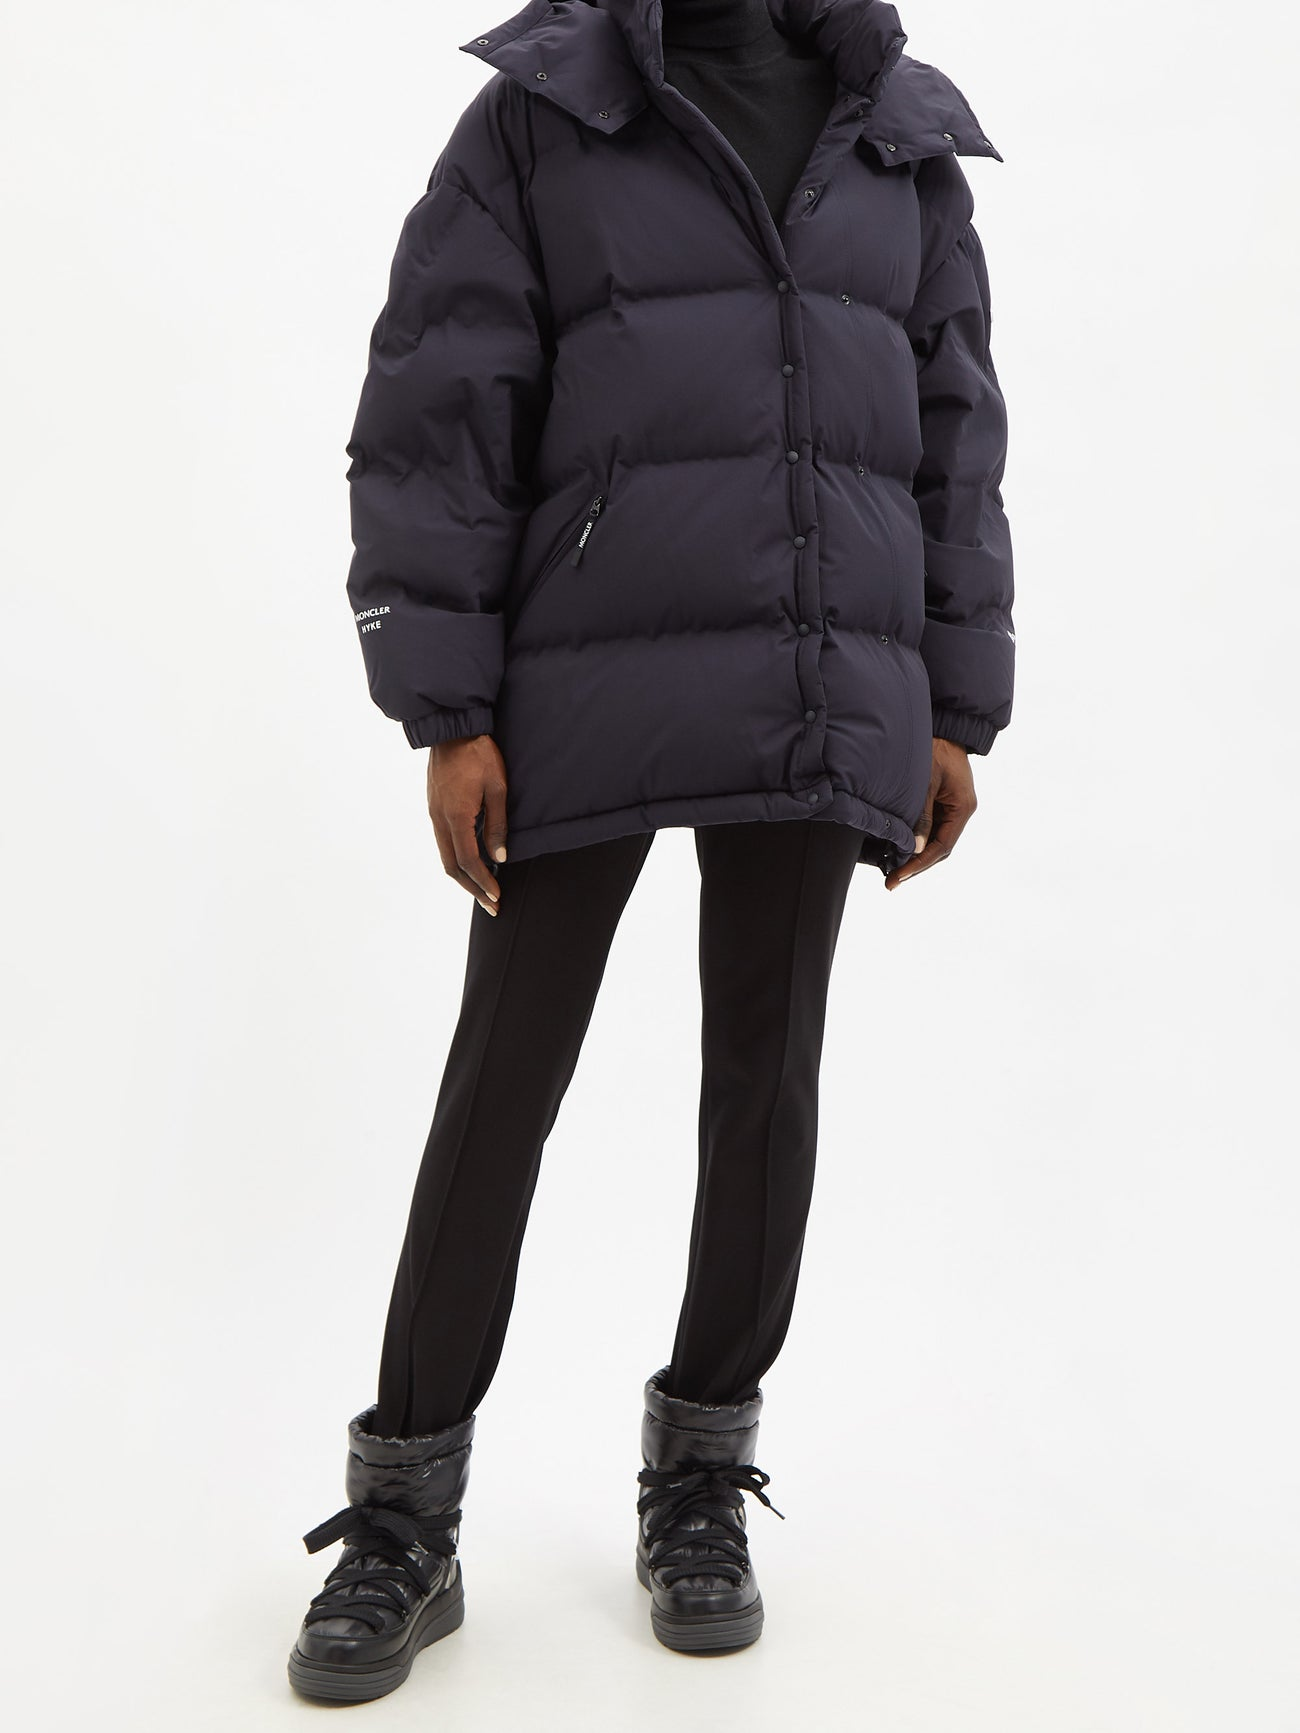 4 MONCLER GENIUS FW21 HYKE Altelsis hooded quilted down jacket $1,489